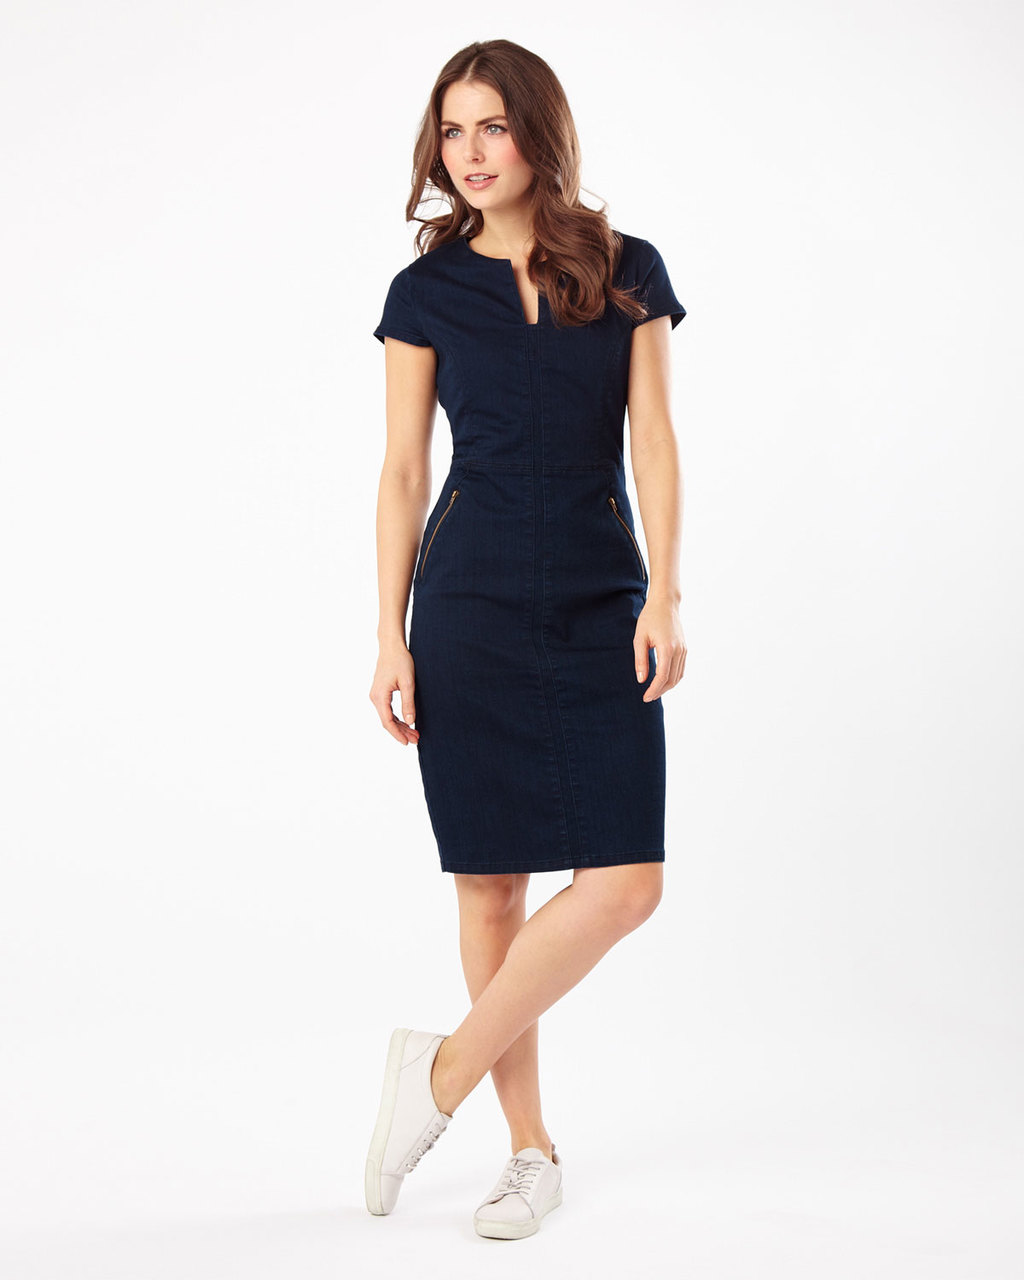 Magda Denim Dress - style: shift; neckline: v-neck; fit: tailored/fitted; pattern: plain; hip detail: fitted at hip; predominant colour: denim; length: just above the knee; fibres: cotton - mix; sleeve length: short sleeve; sleeve style: standard; texture group: denim; pattern type: fabric; occasions: creative work; season: s/s 2016; wardrobe: highlight